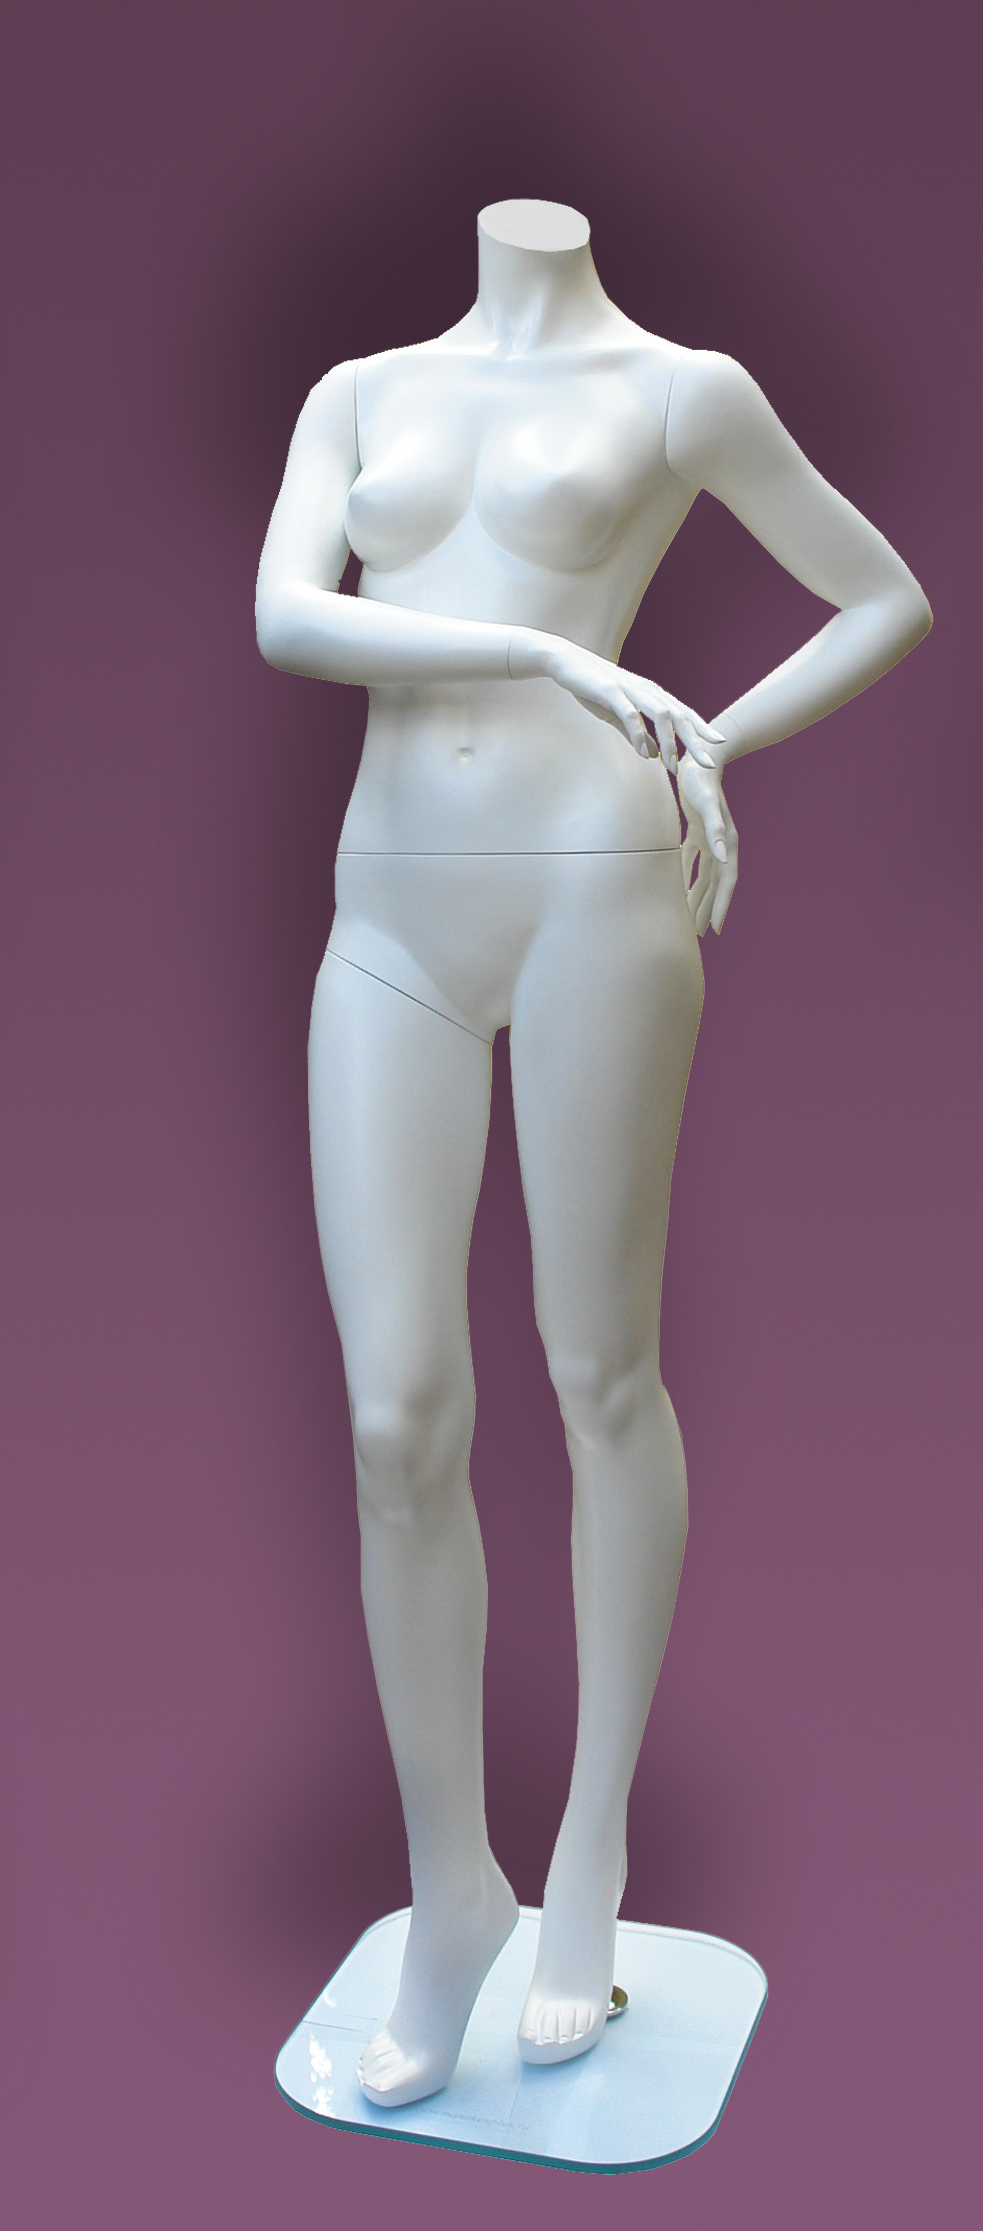 Female mannequins of the Inspiration 41 series